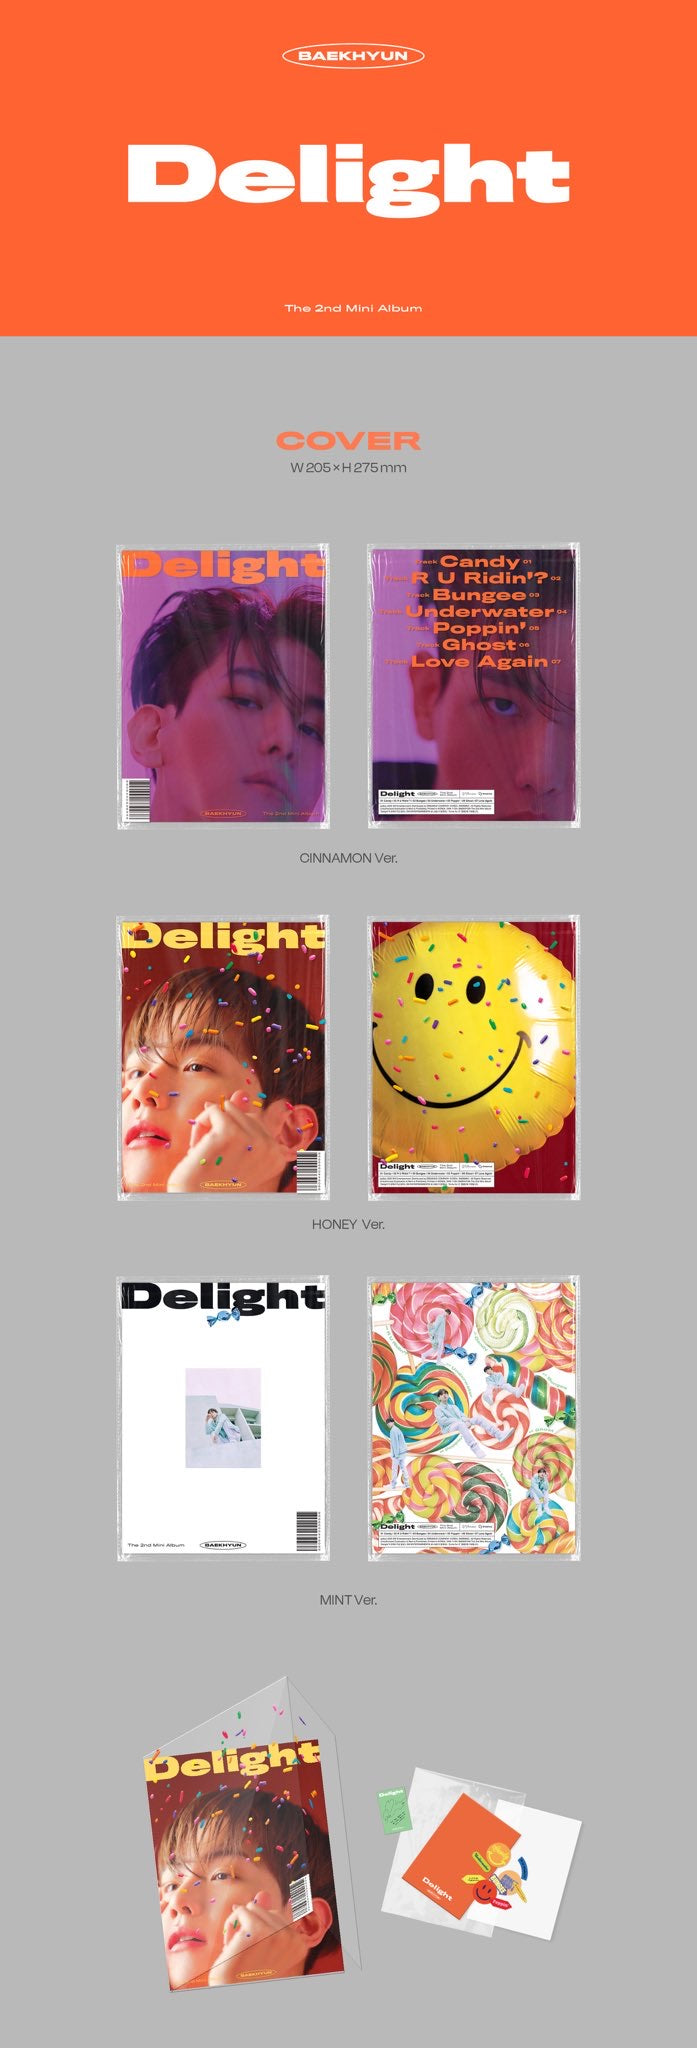 Baek Hyun - Delight (2nd Mini Album) - J-Store Online